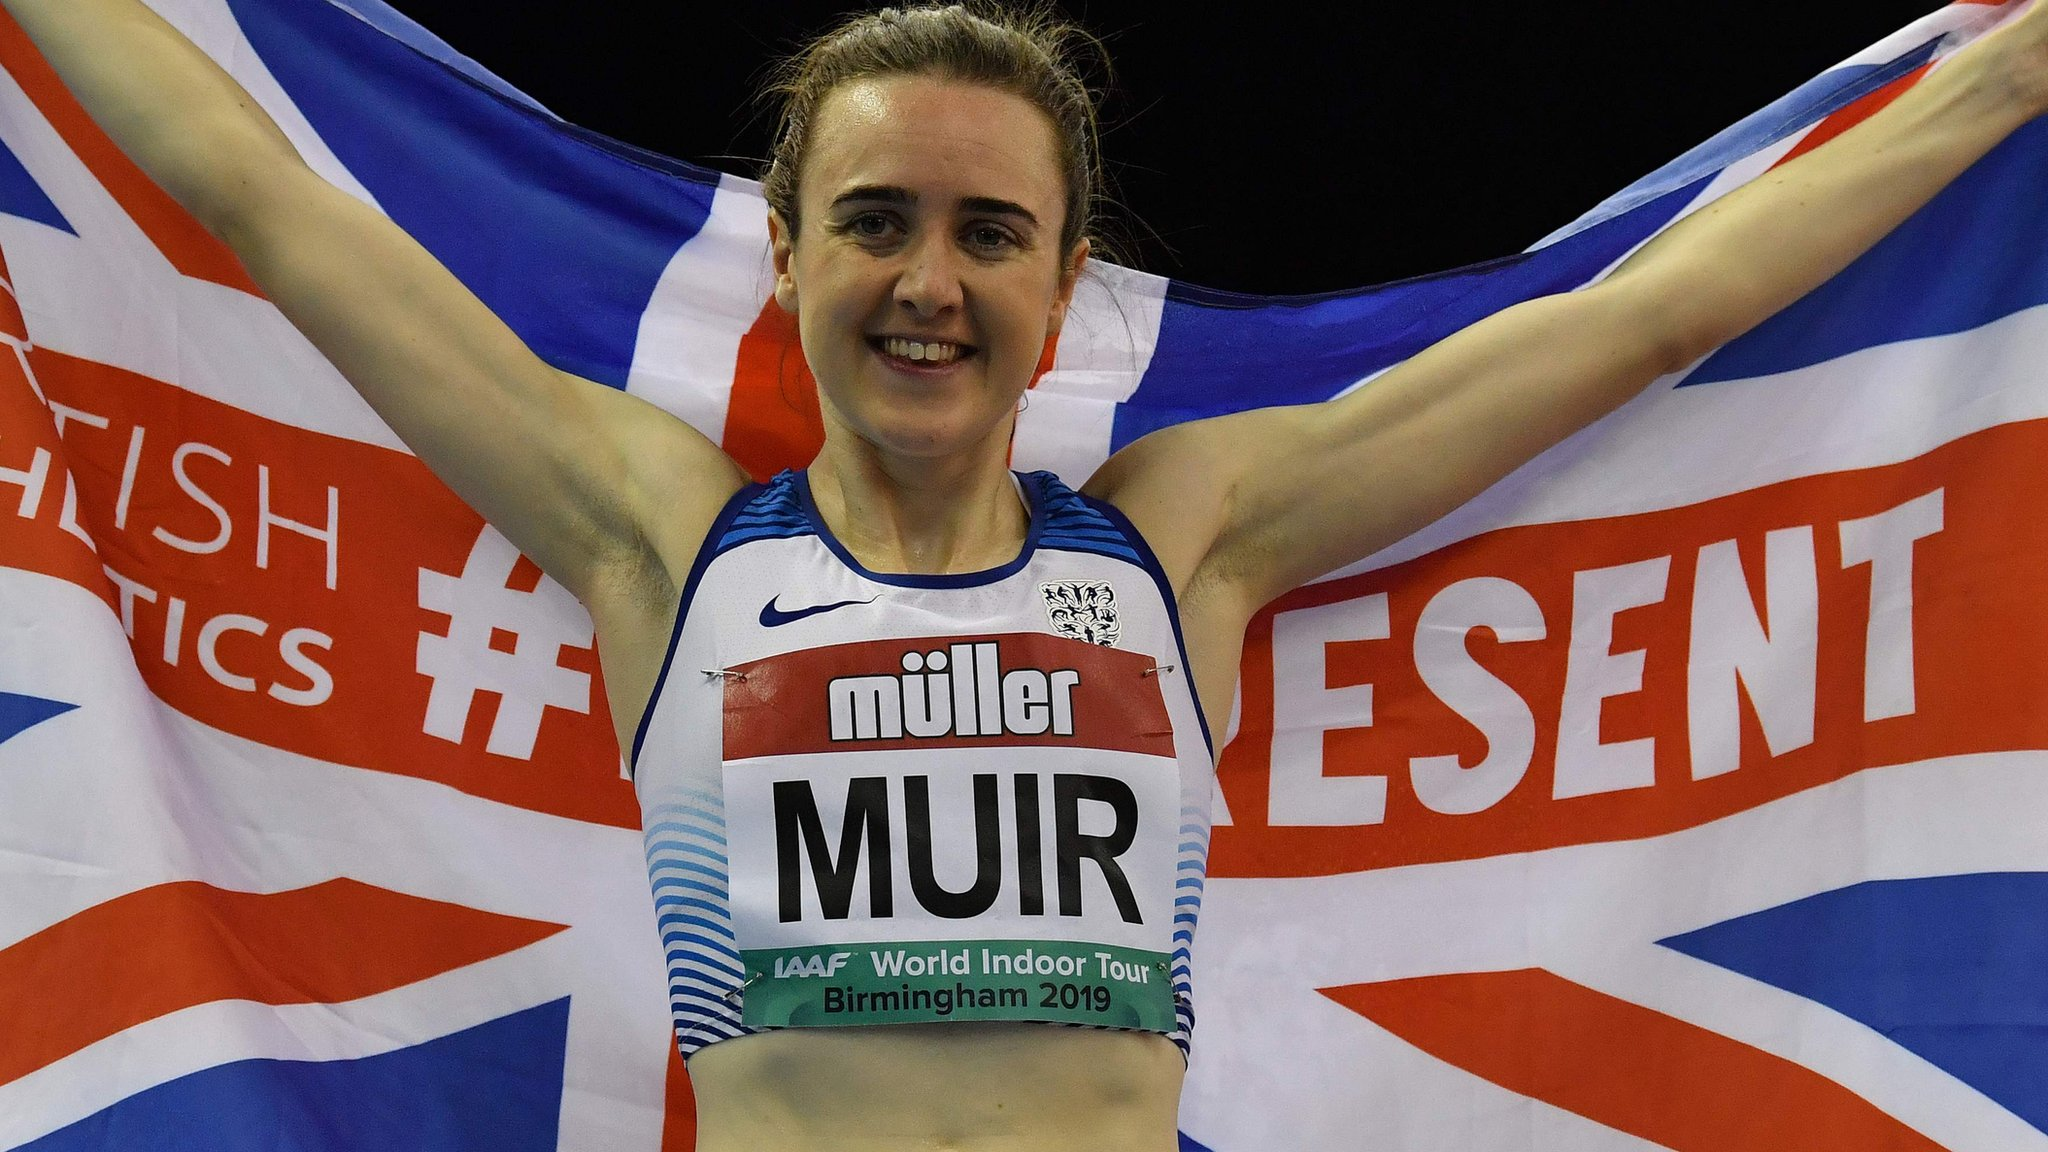 Muir breaks mile record by five seconds - video & report